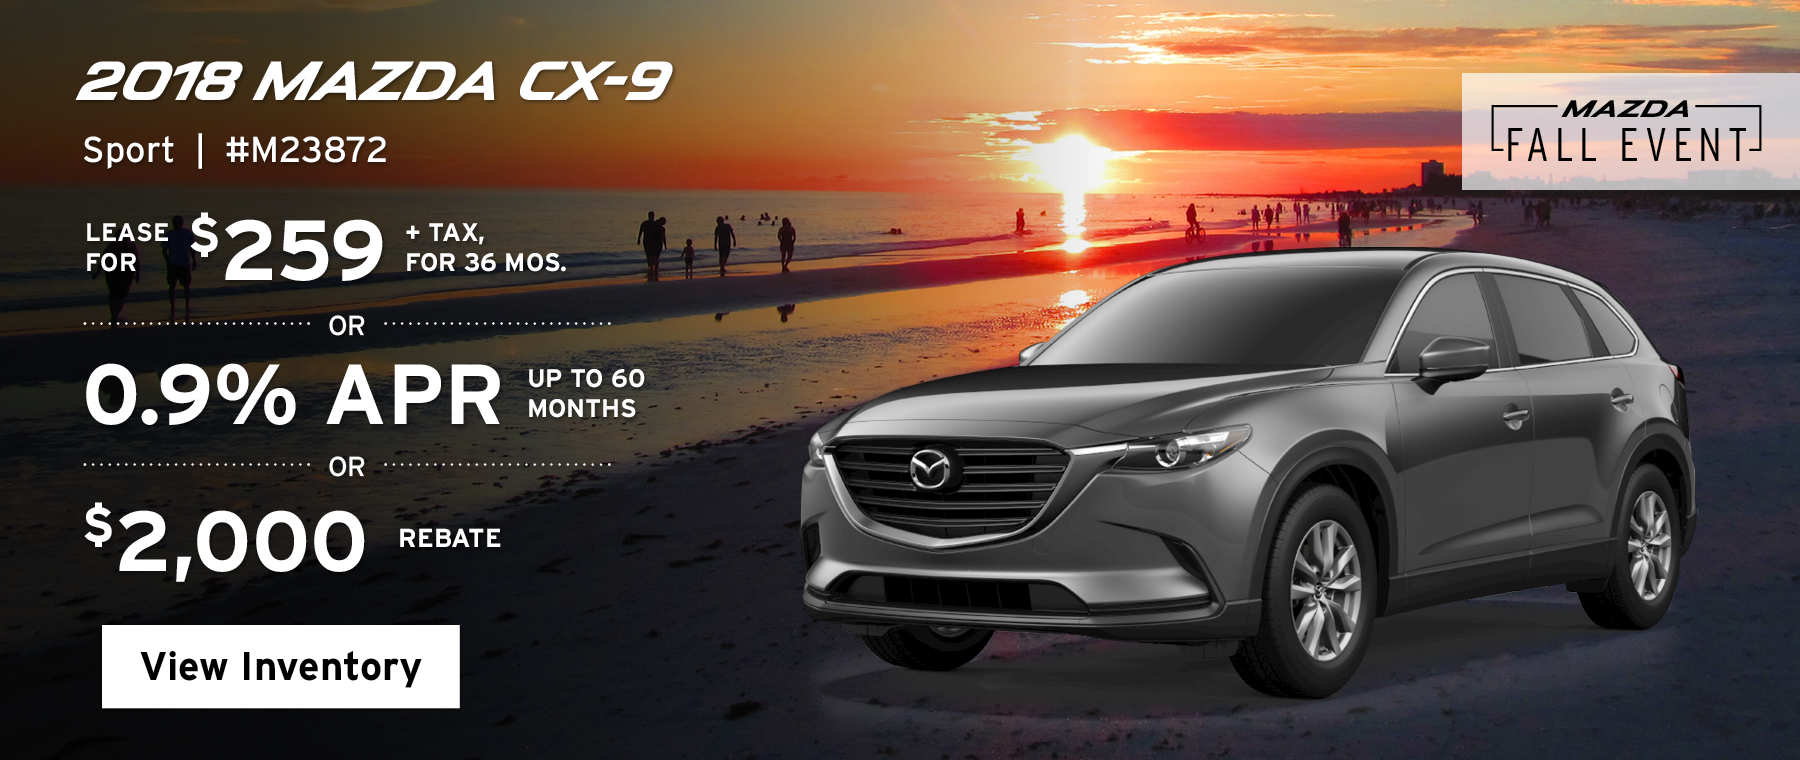 Lease the 2018 Mazda CX-9 Sport for $259, plus tax for 36 months, or 0.9% APR up to 60 months, or a $2,000 rebate.